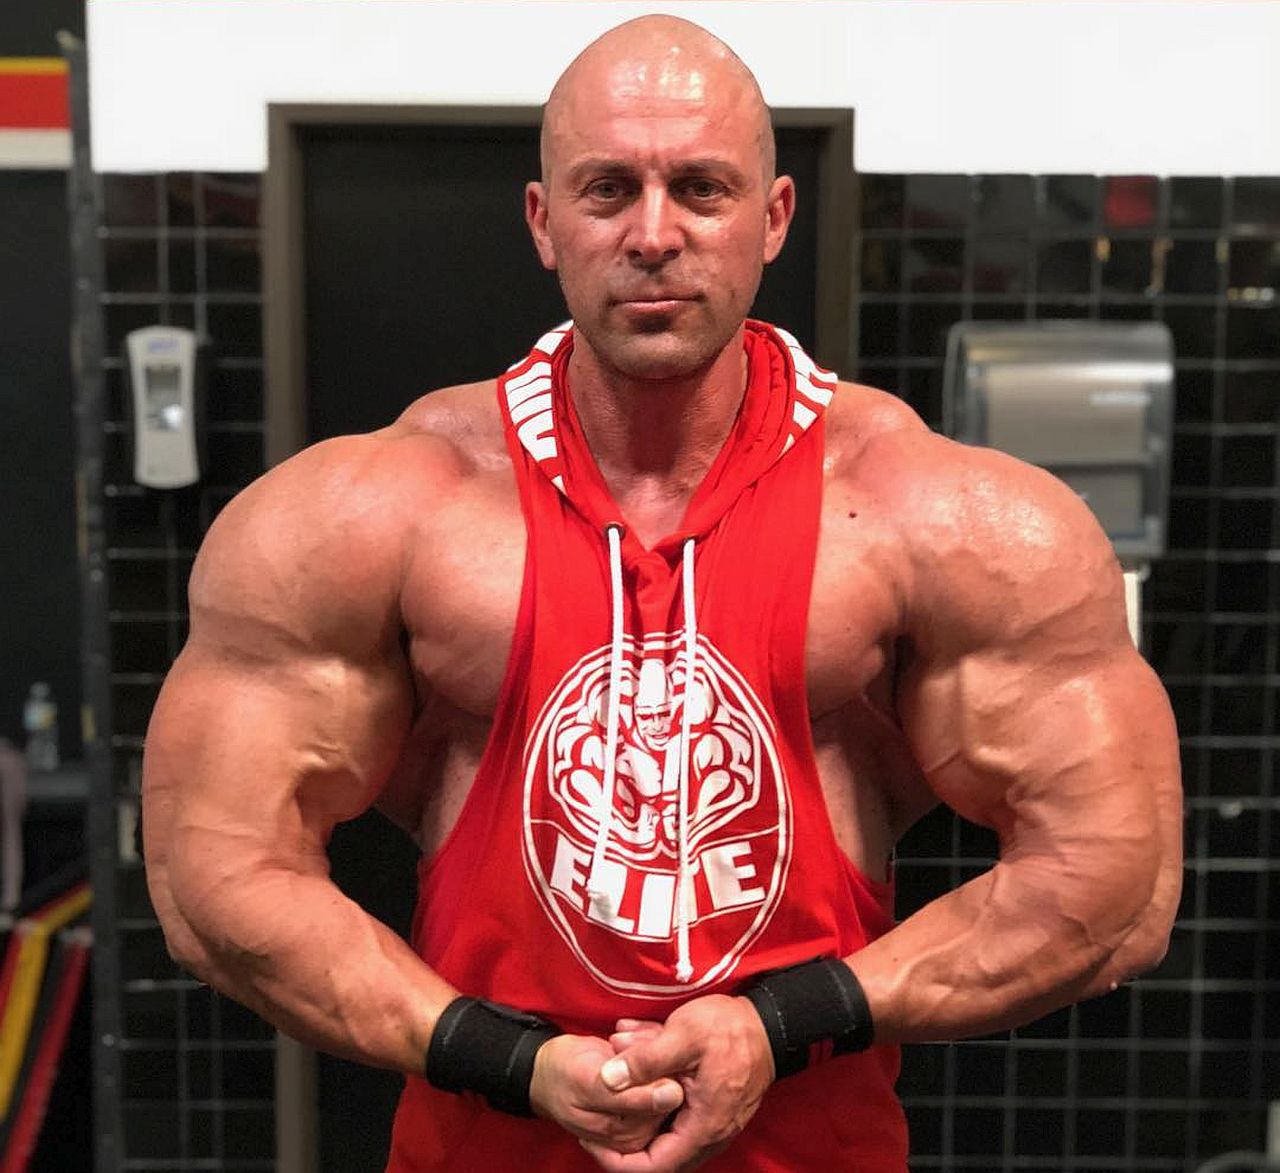 IFBB Pro Luca Pennazzato Could Have a Heart Attack if Someone Scares Him